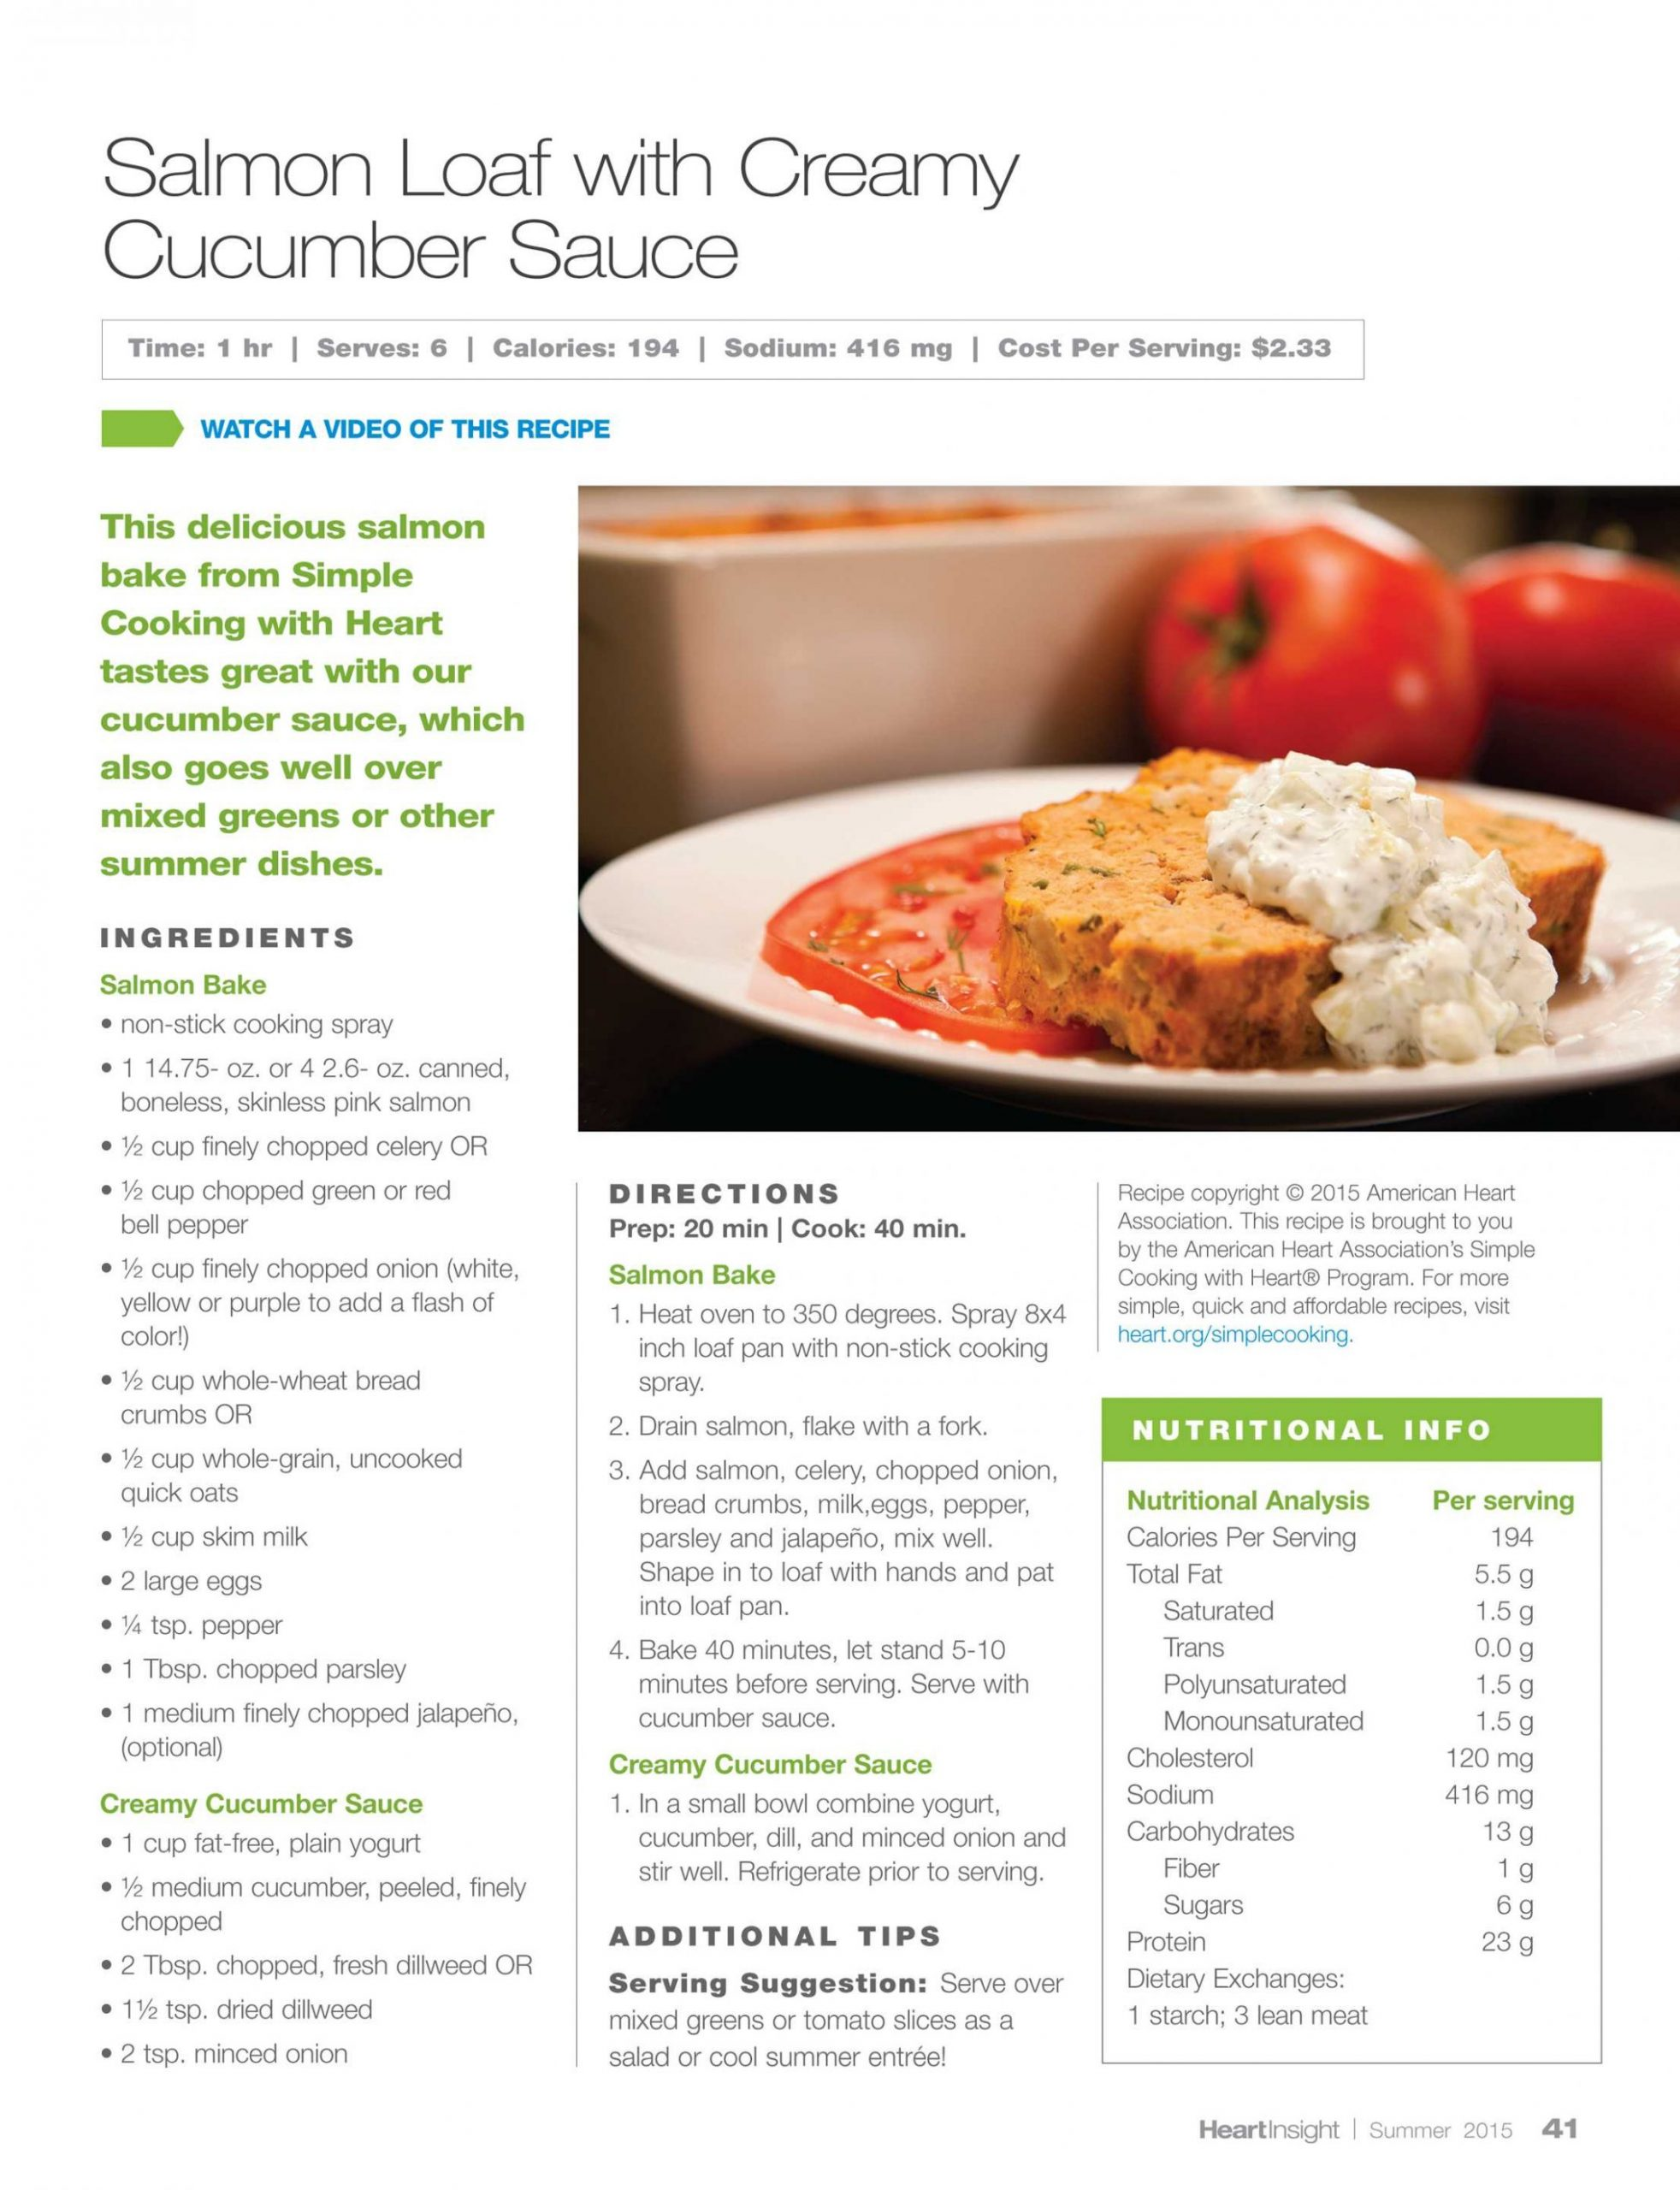 Heart Insight - Summer 10 - page 10 - Simple Recipes Analysis